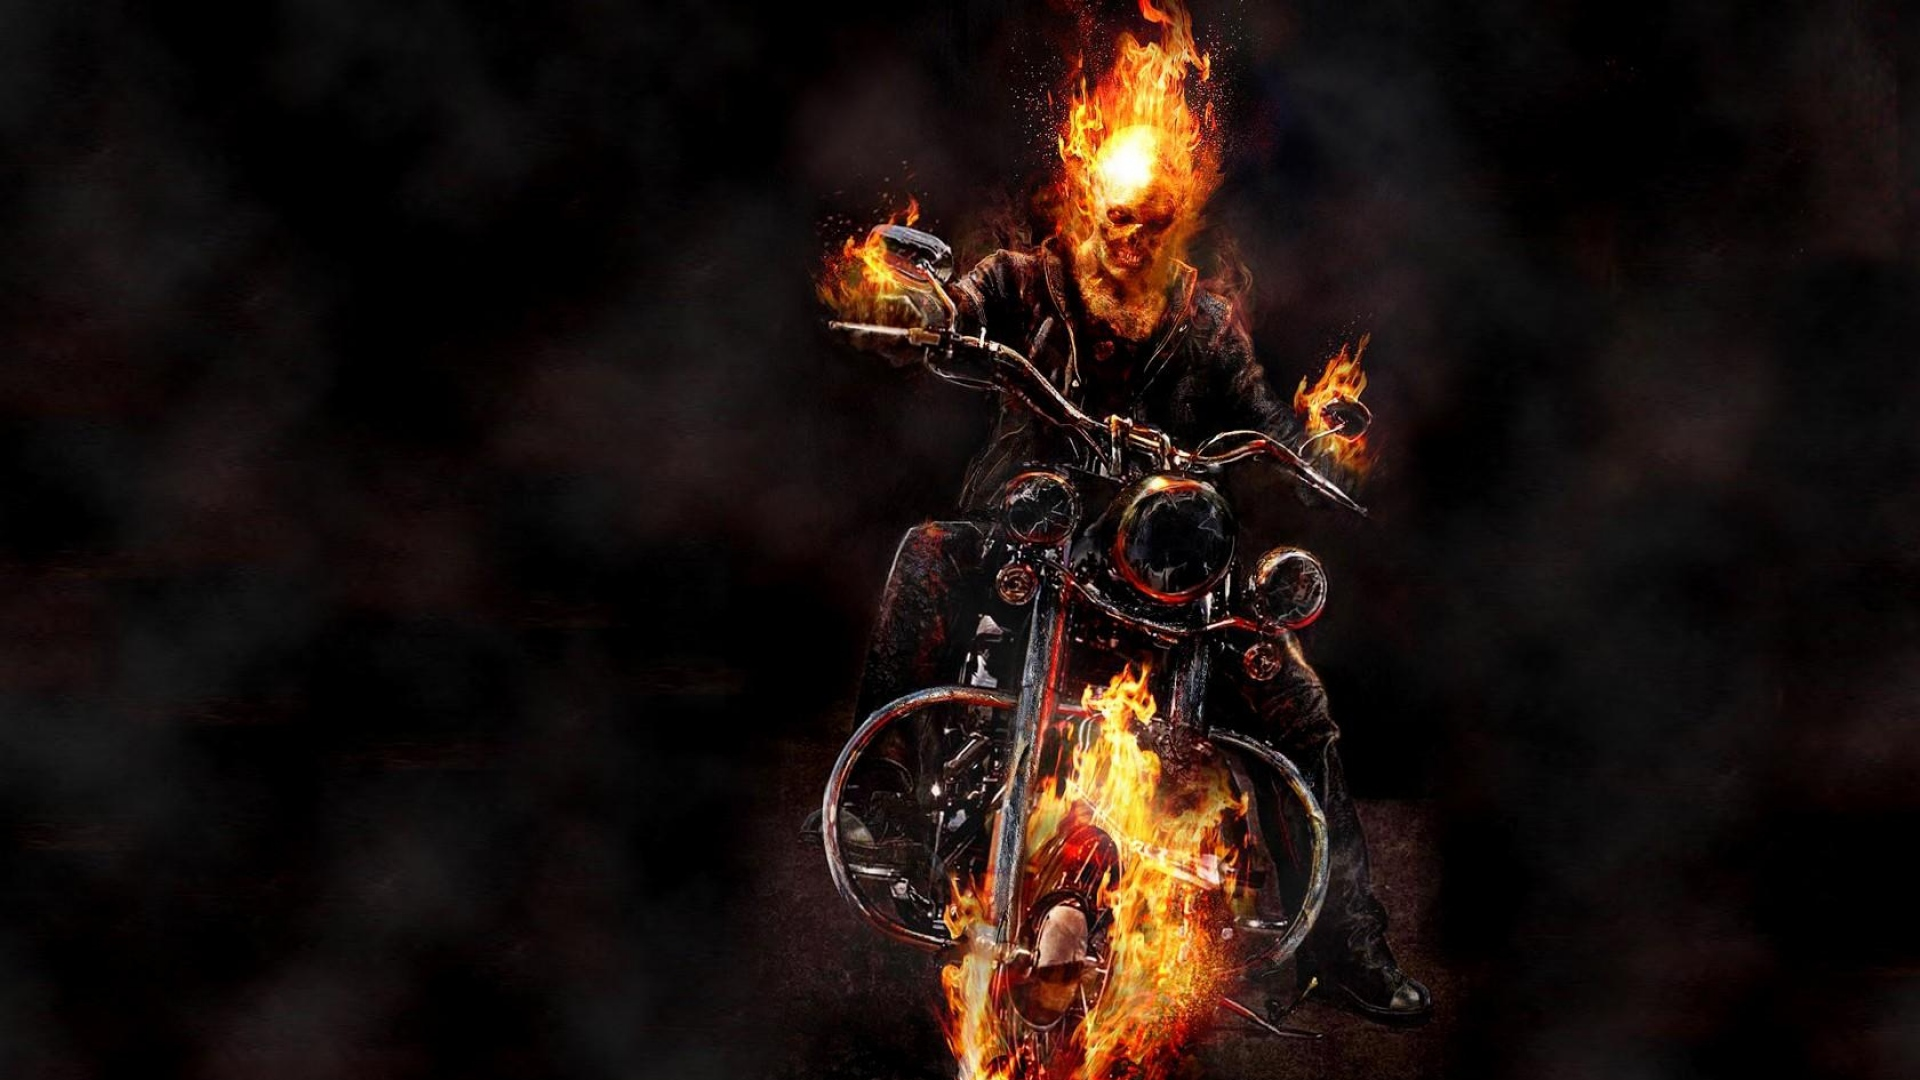 Motorcycle Ghost Rider Image HD Wallpaper WallpaperLepi 1920x1080